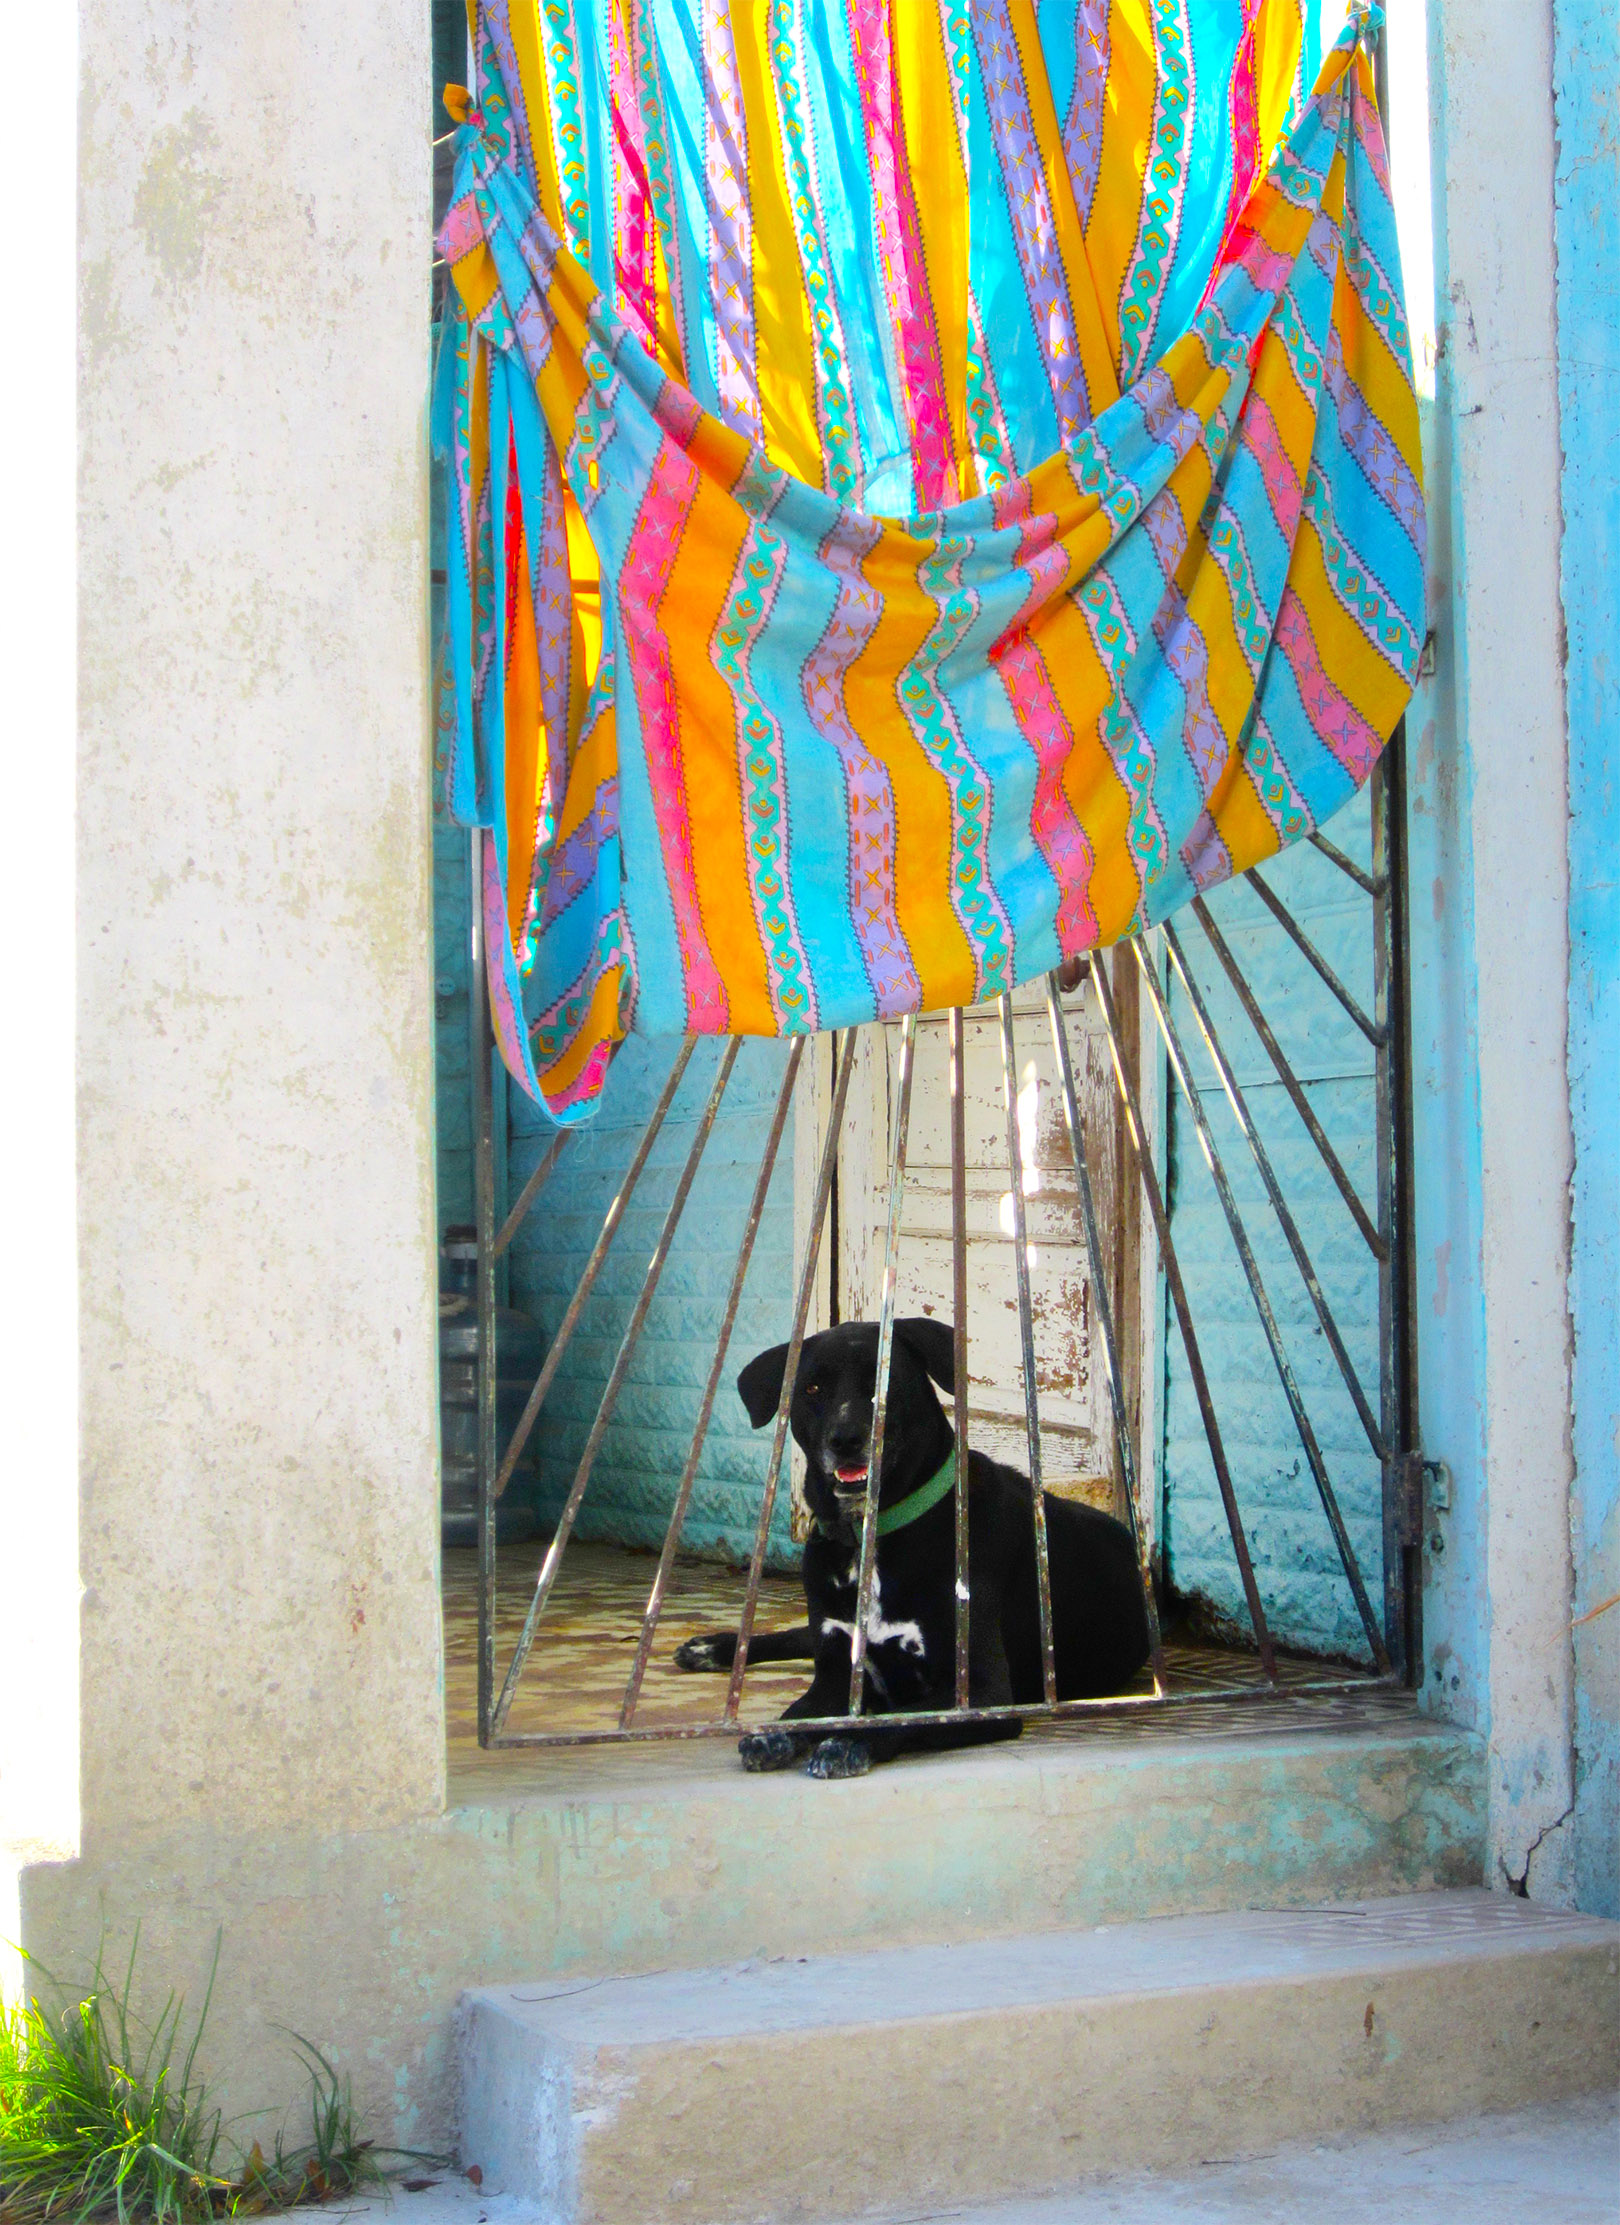 A Dog Resting on the Patio of a Home in Vieques, Puerto Rico